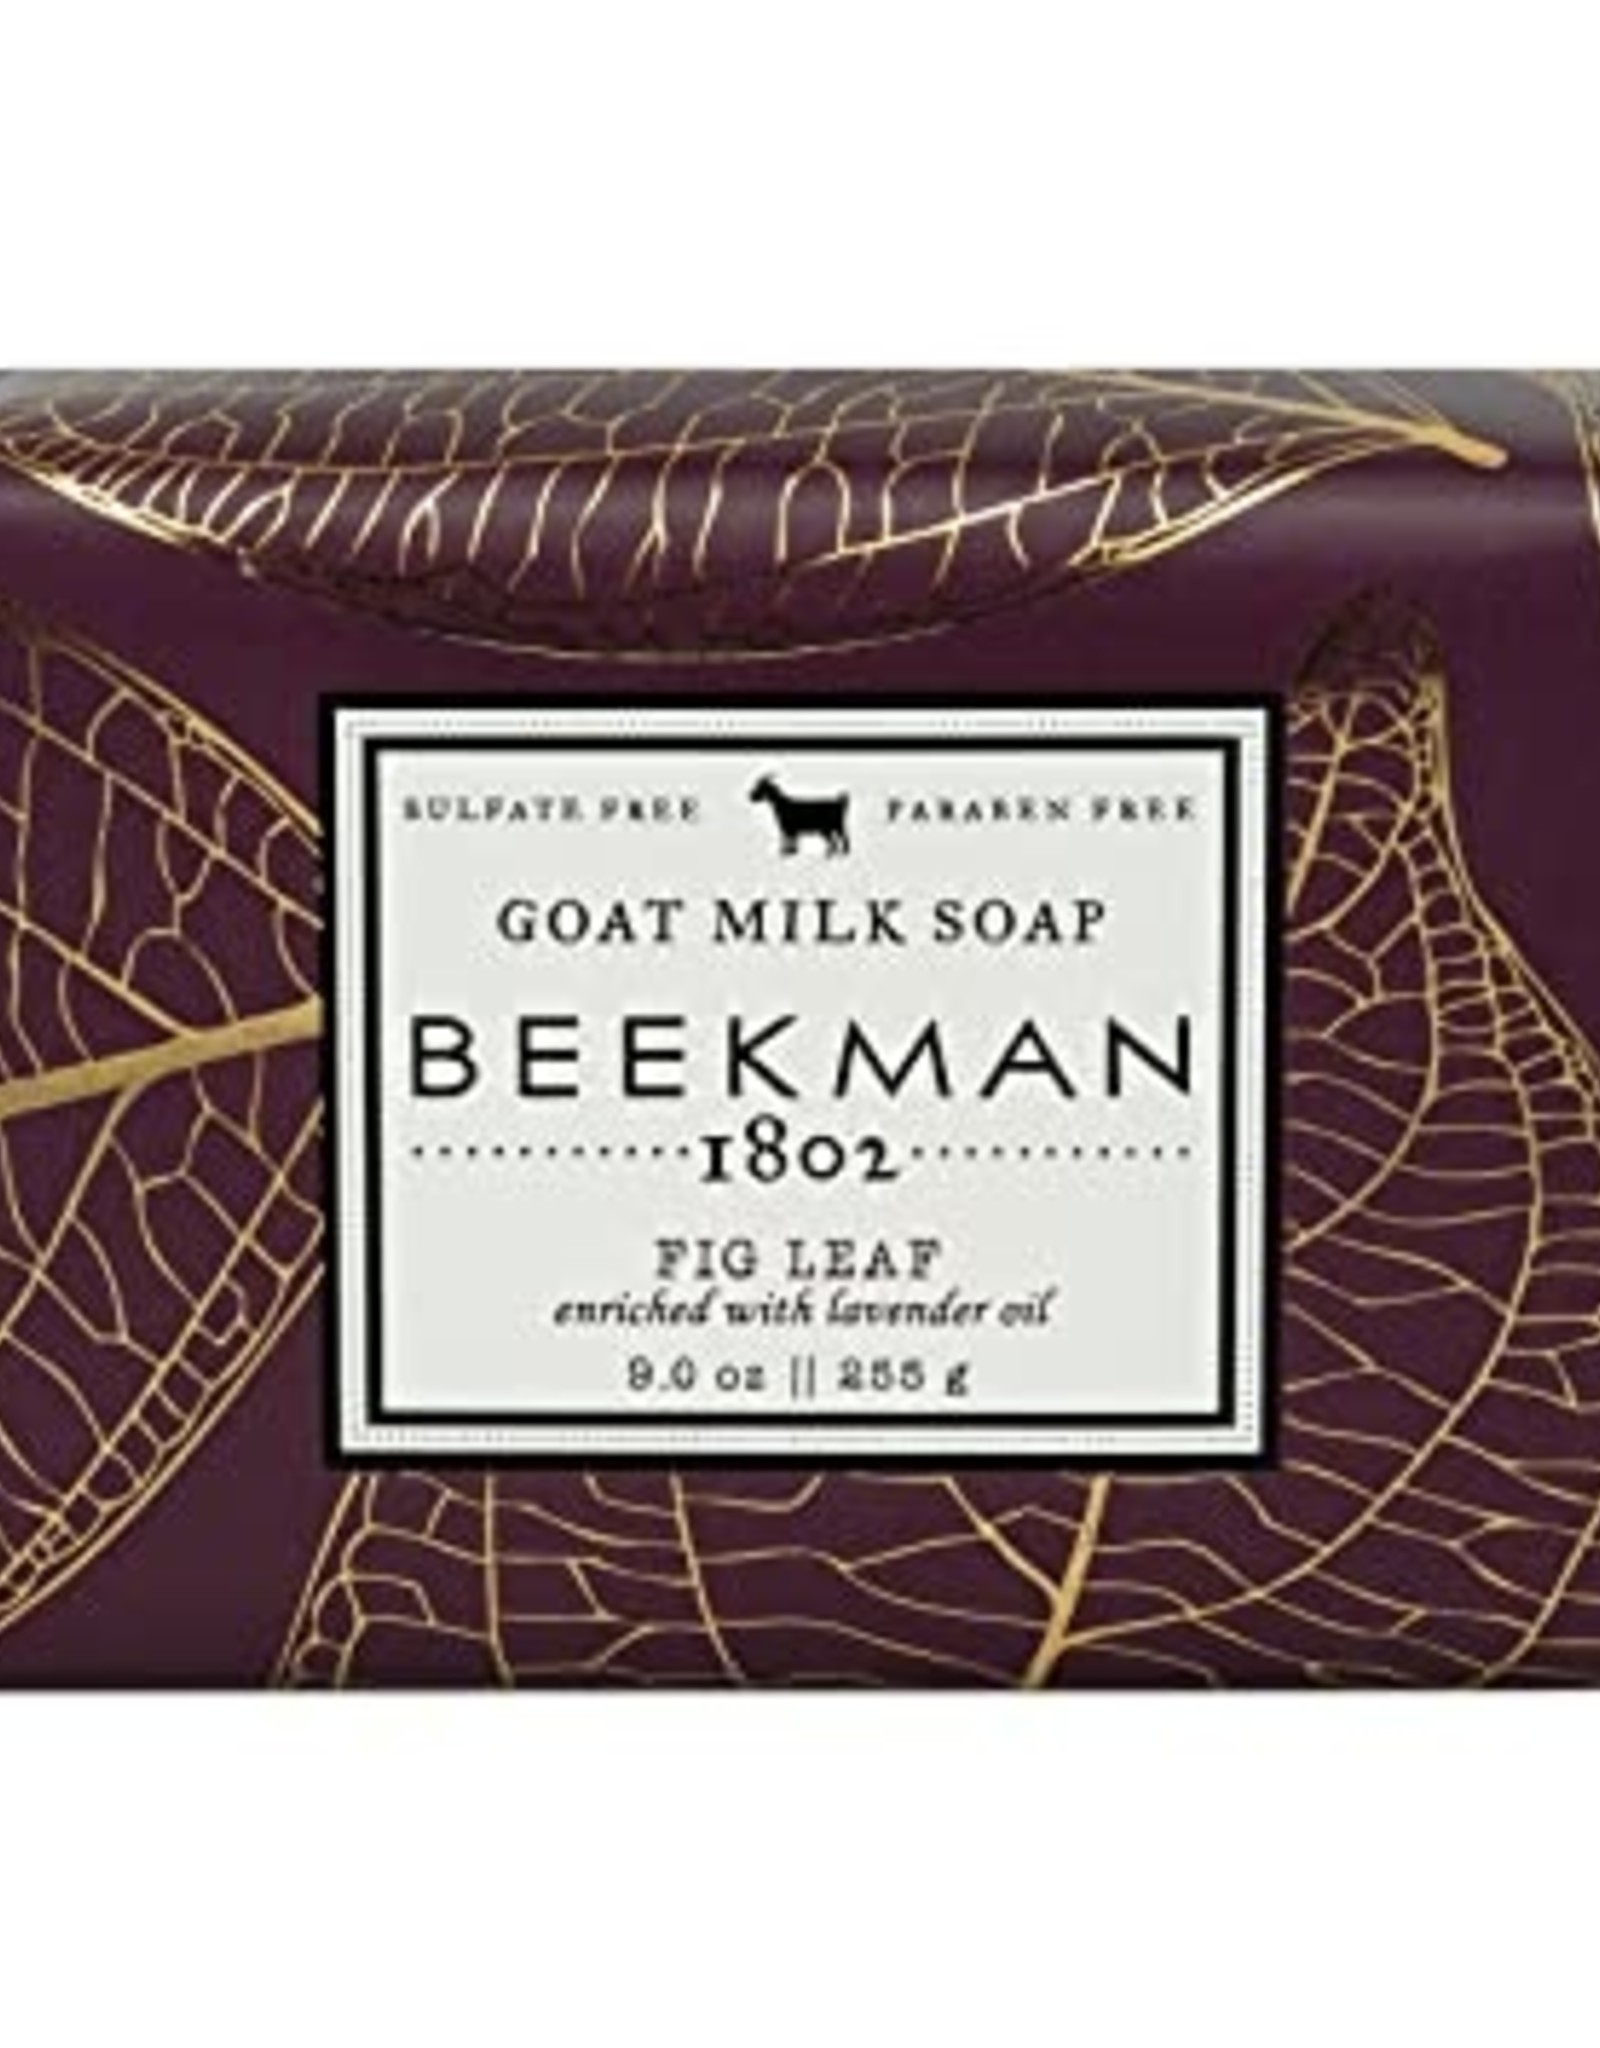 Beekman 1802 Beekman 1802 - 9oz Soap Bar